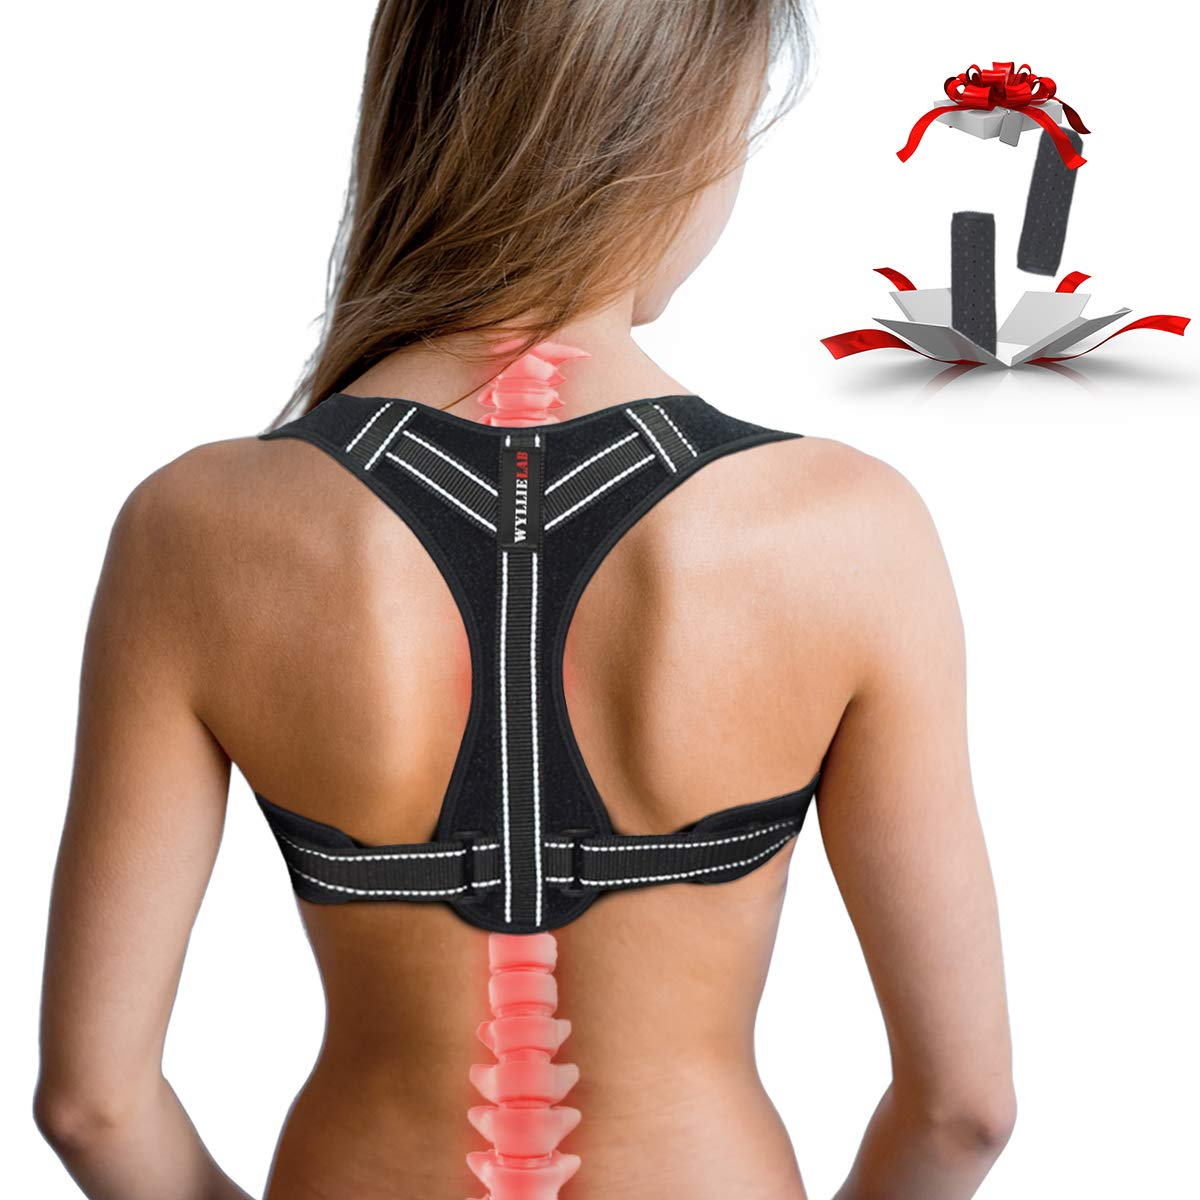 Posture Corrector for Women, Adjustable Back Posture Corrector for Men, Effective Comfortable Best Back Brace for Posture Under Clothes, Back Support Posture Brace for Shoulder and Back Pain Relief by WYLLIELAB